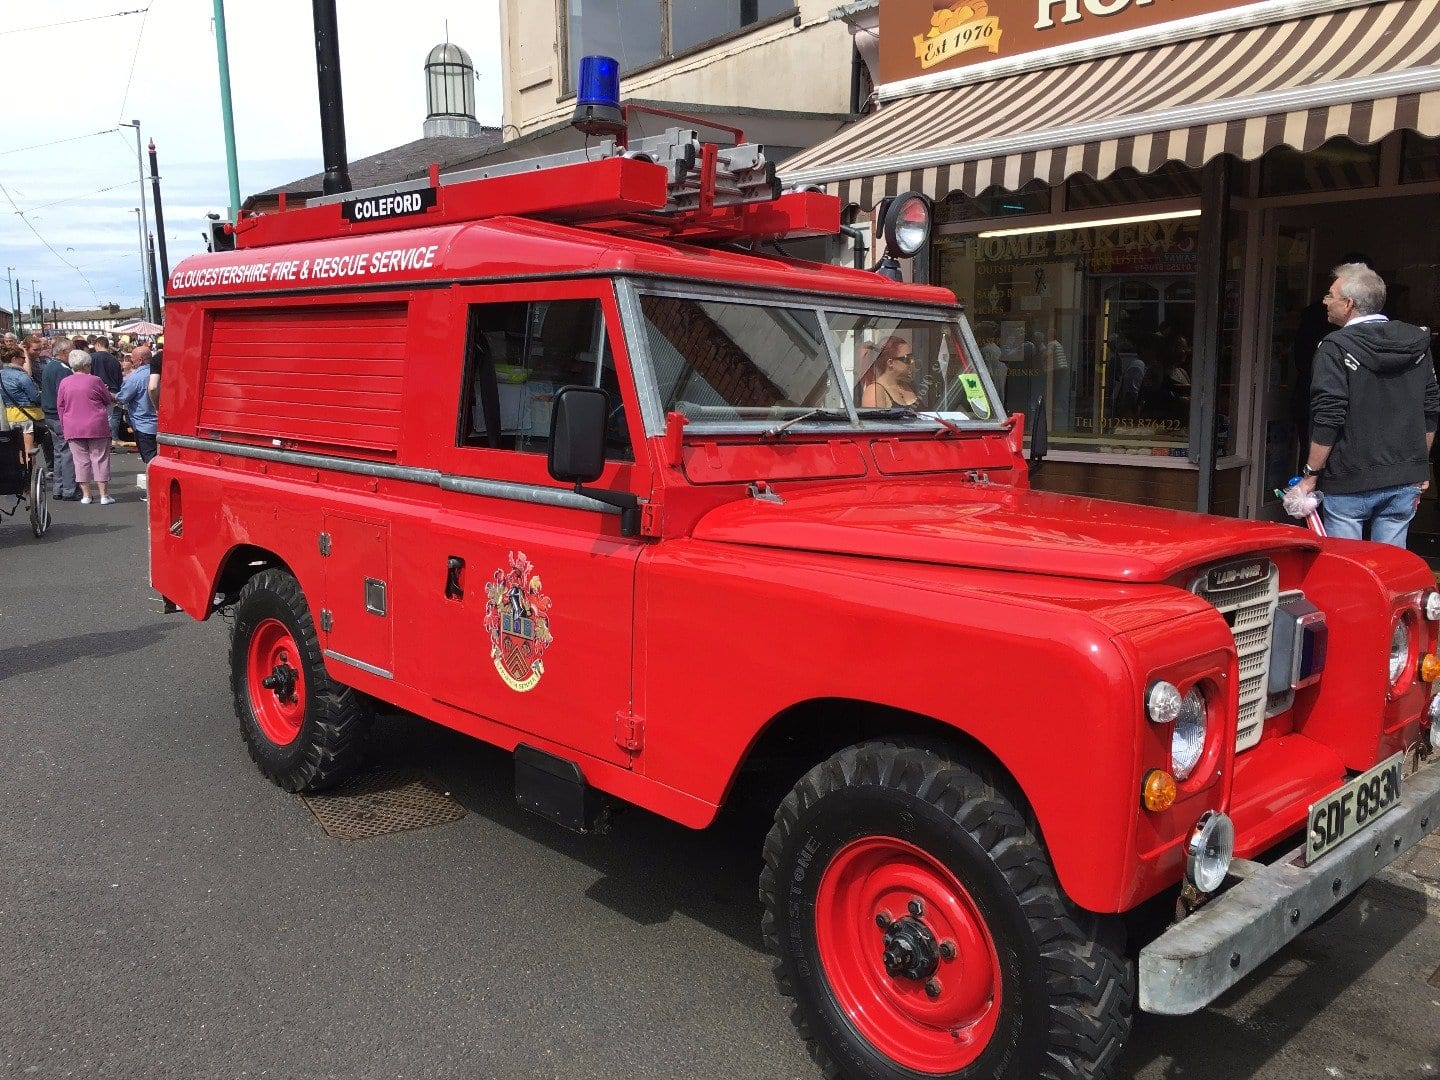 Vintage Land Rover at Fleetwood Tram Sunday